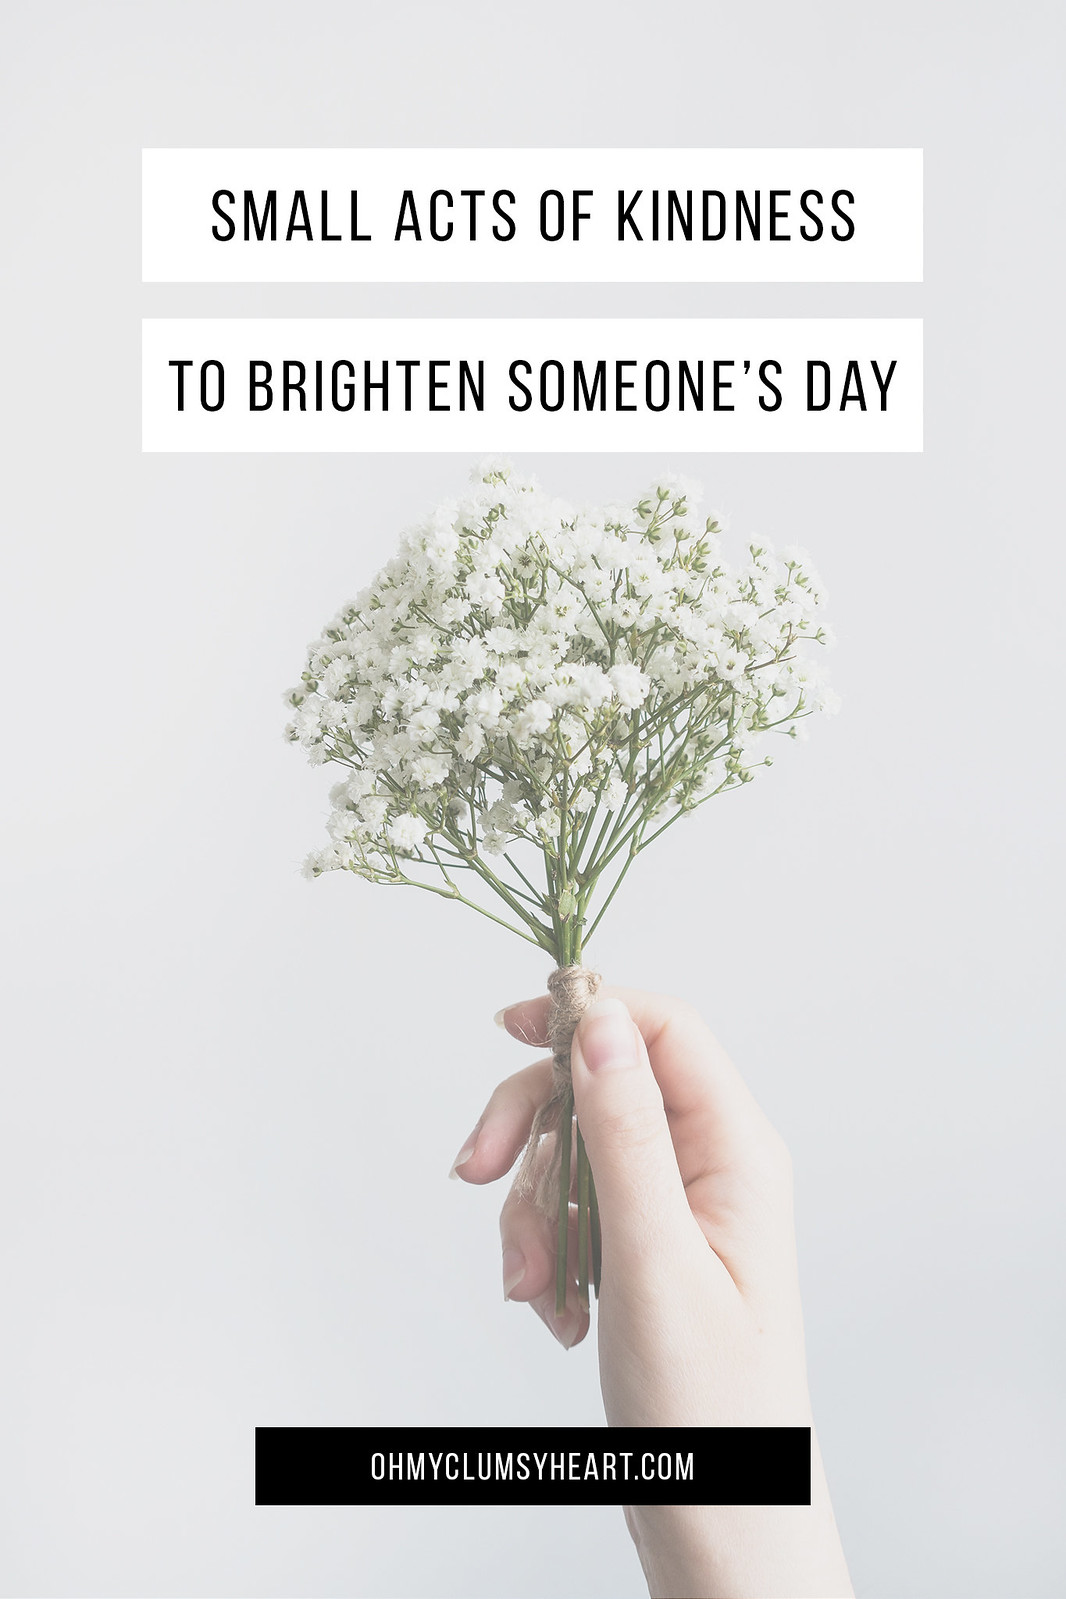 Small Acts Of Kindness To Brighten Someone's Day